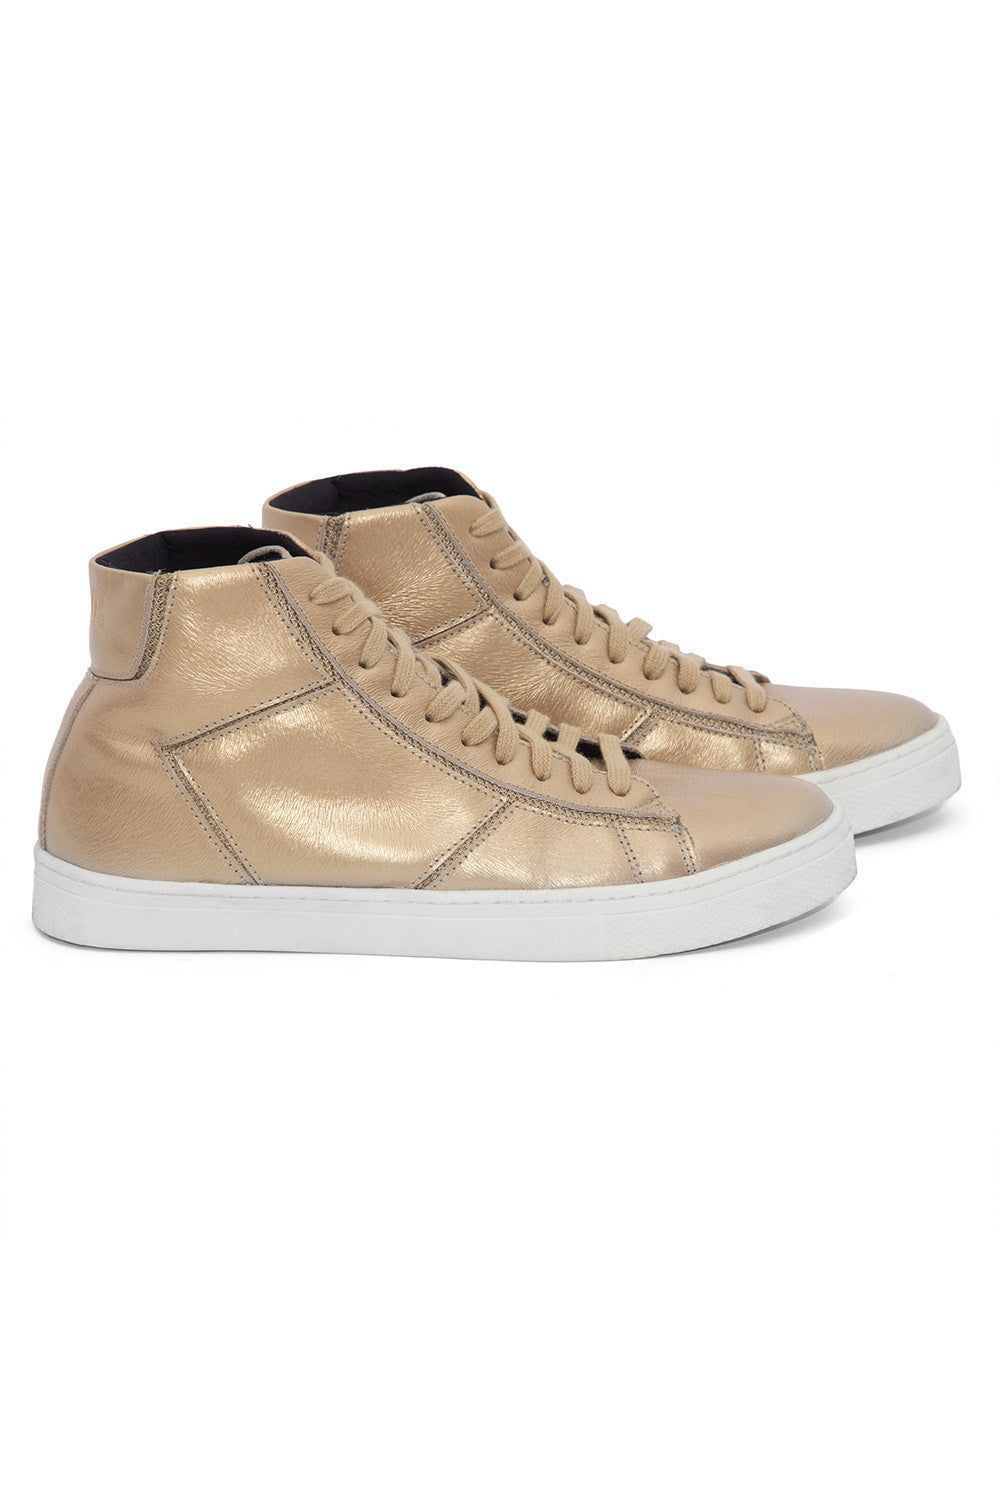 Metallic Bright Gold Sneakers